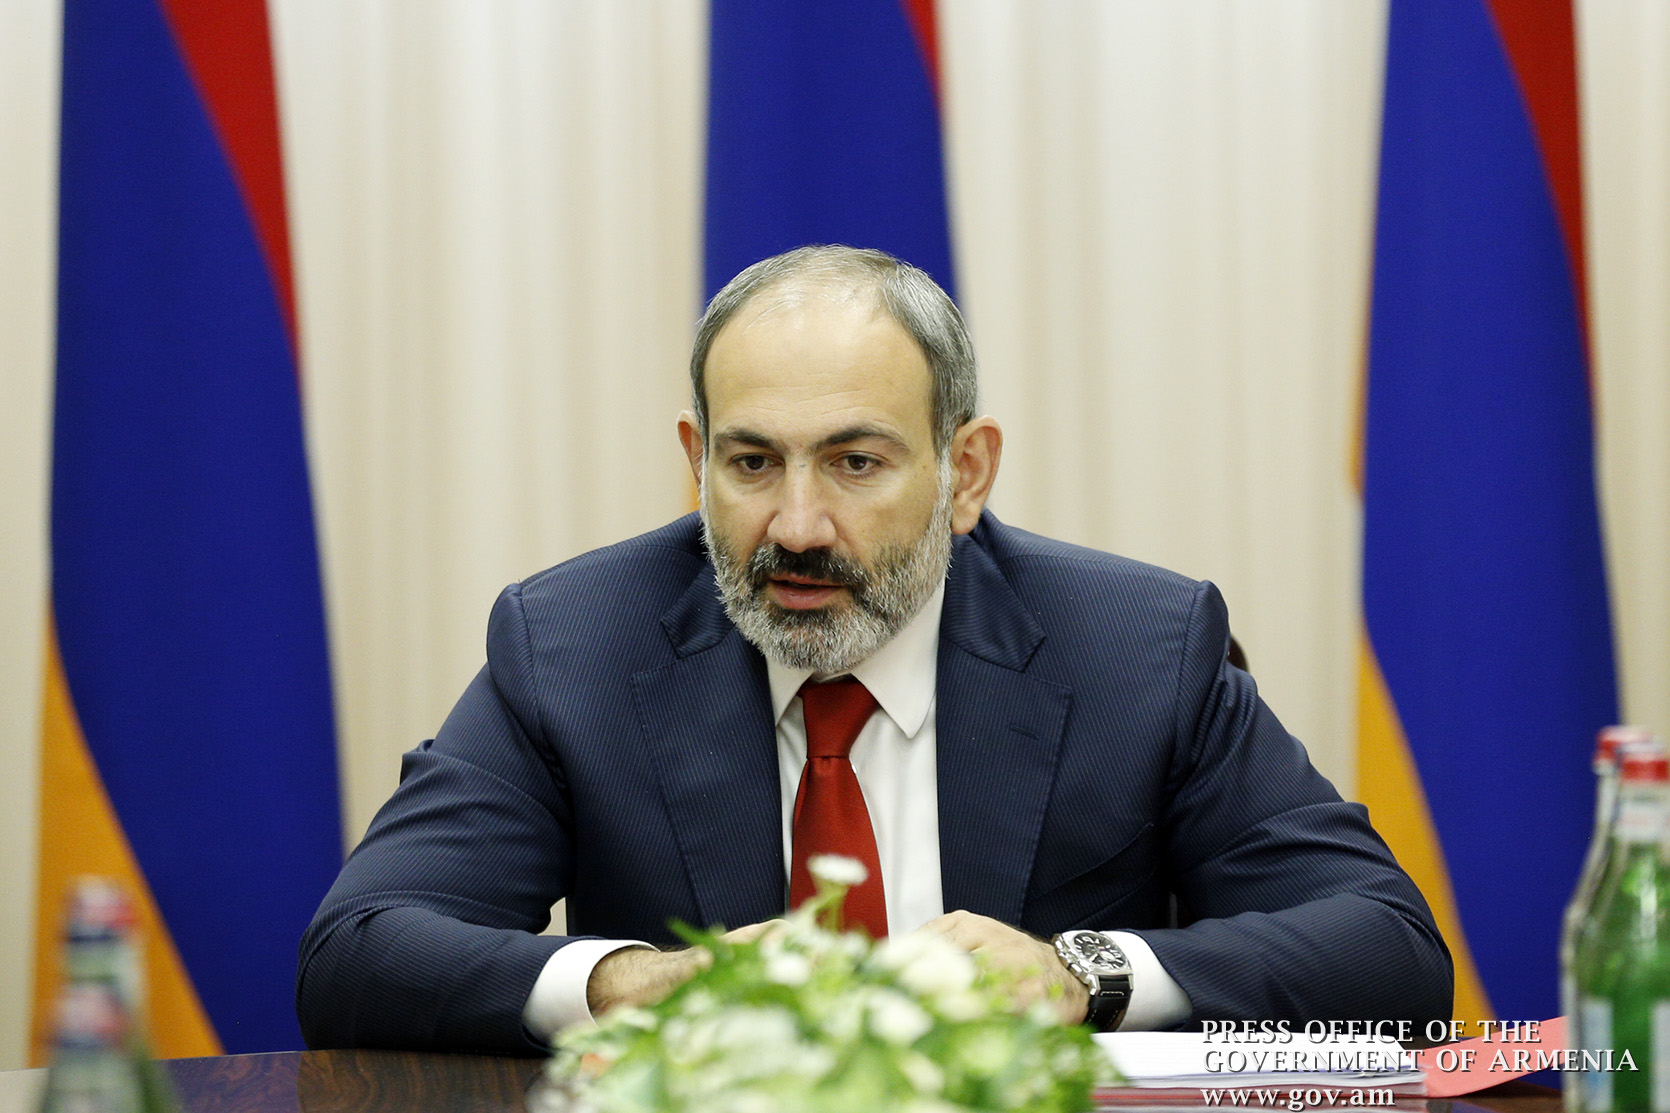 Pashinyan held a meeting of the Security Council